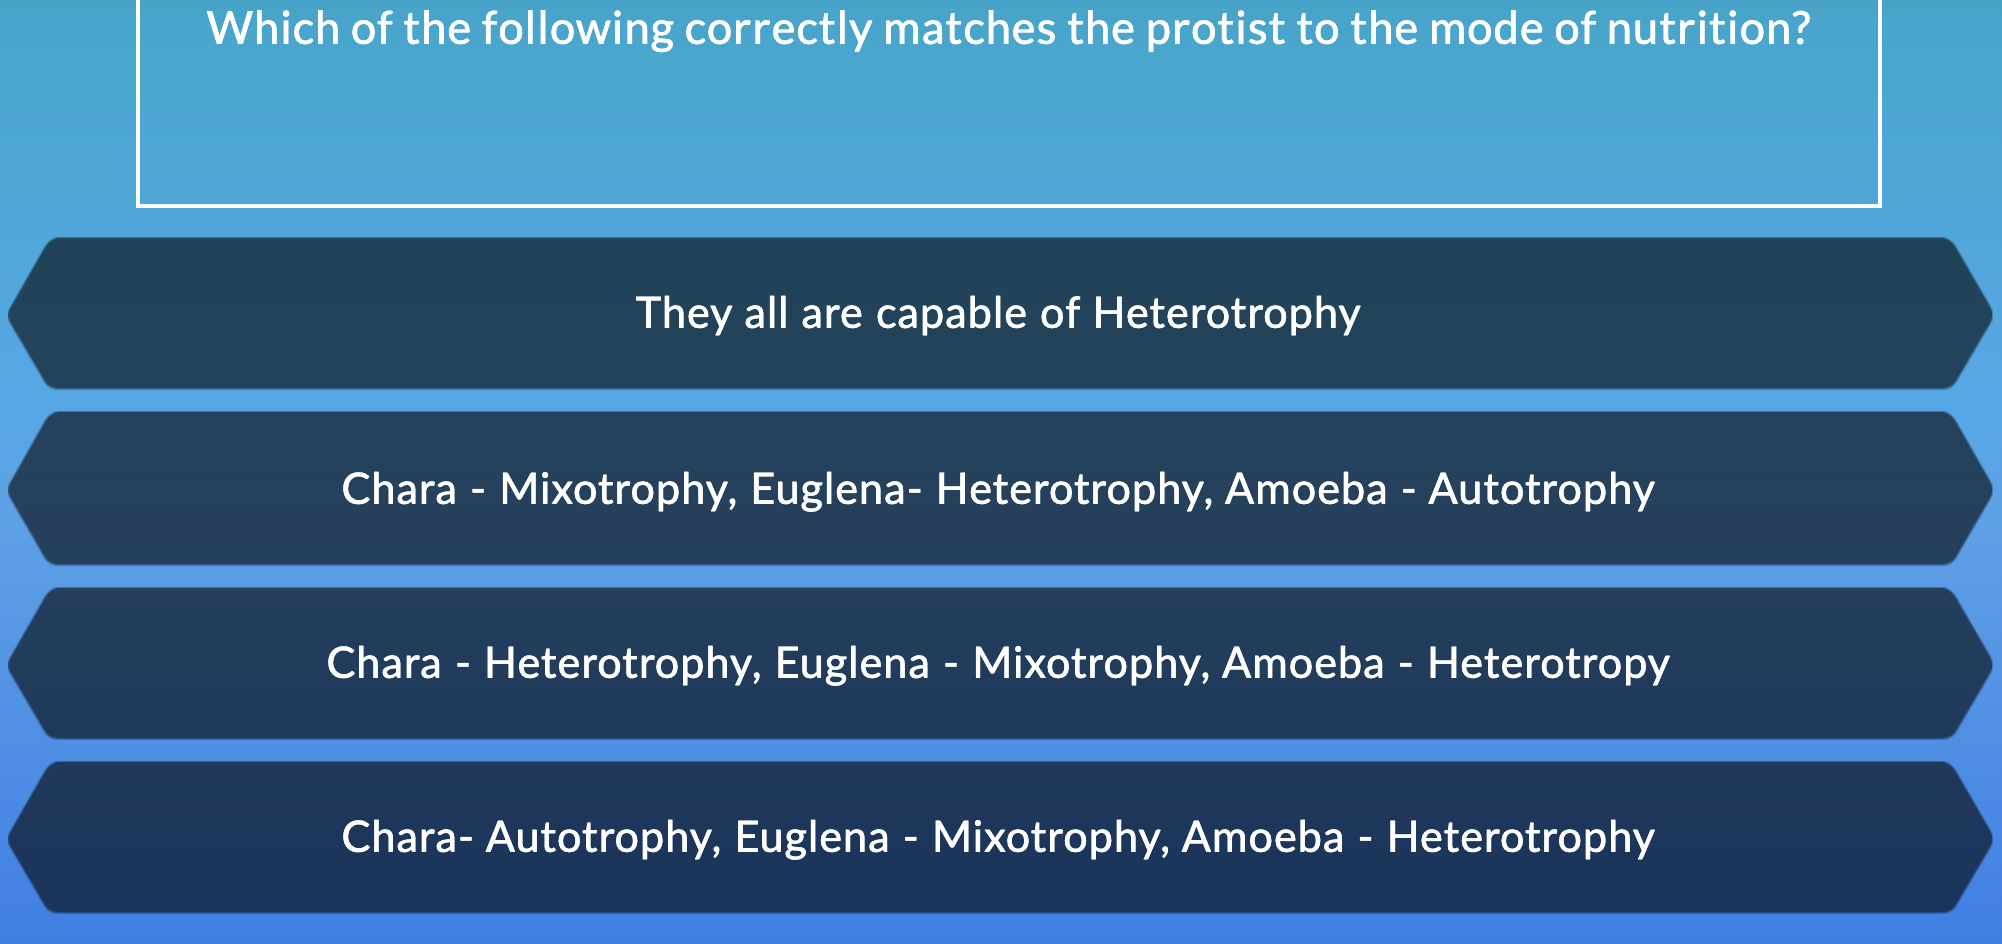 Which of the following correctly matches the protist to the mode of nutrition? They all are capable of Heterotrophy Chara - Mixotrophy, Euglena- Heterotrophy, Amoeba - Autotrophy Chara - Heterotrophy, Euglena - Mixotrophy, Amoeba - Heterotropy Chara- Autotrophy, Euglena - Mixotrophy, Amoeba - Heterotrophy